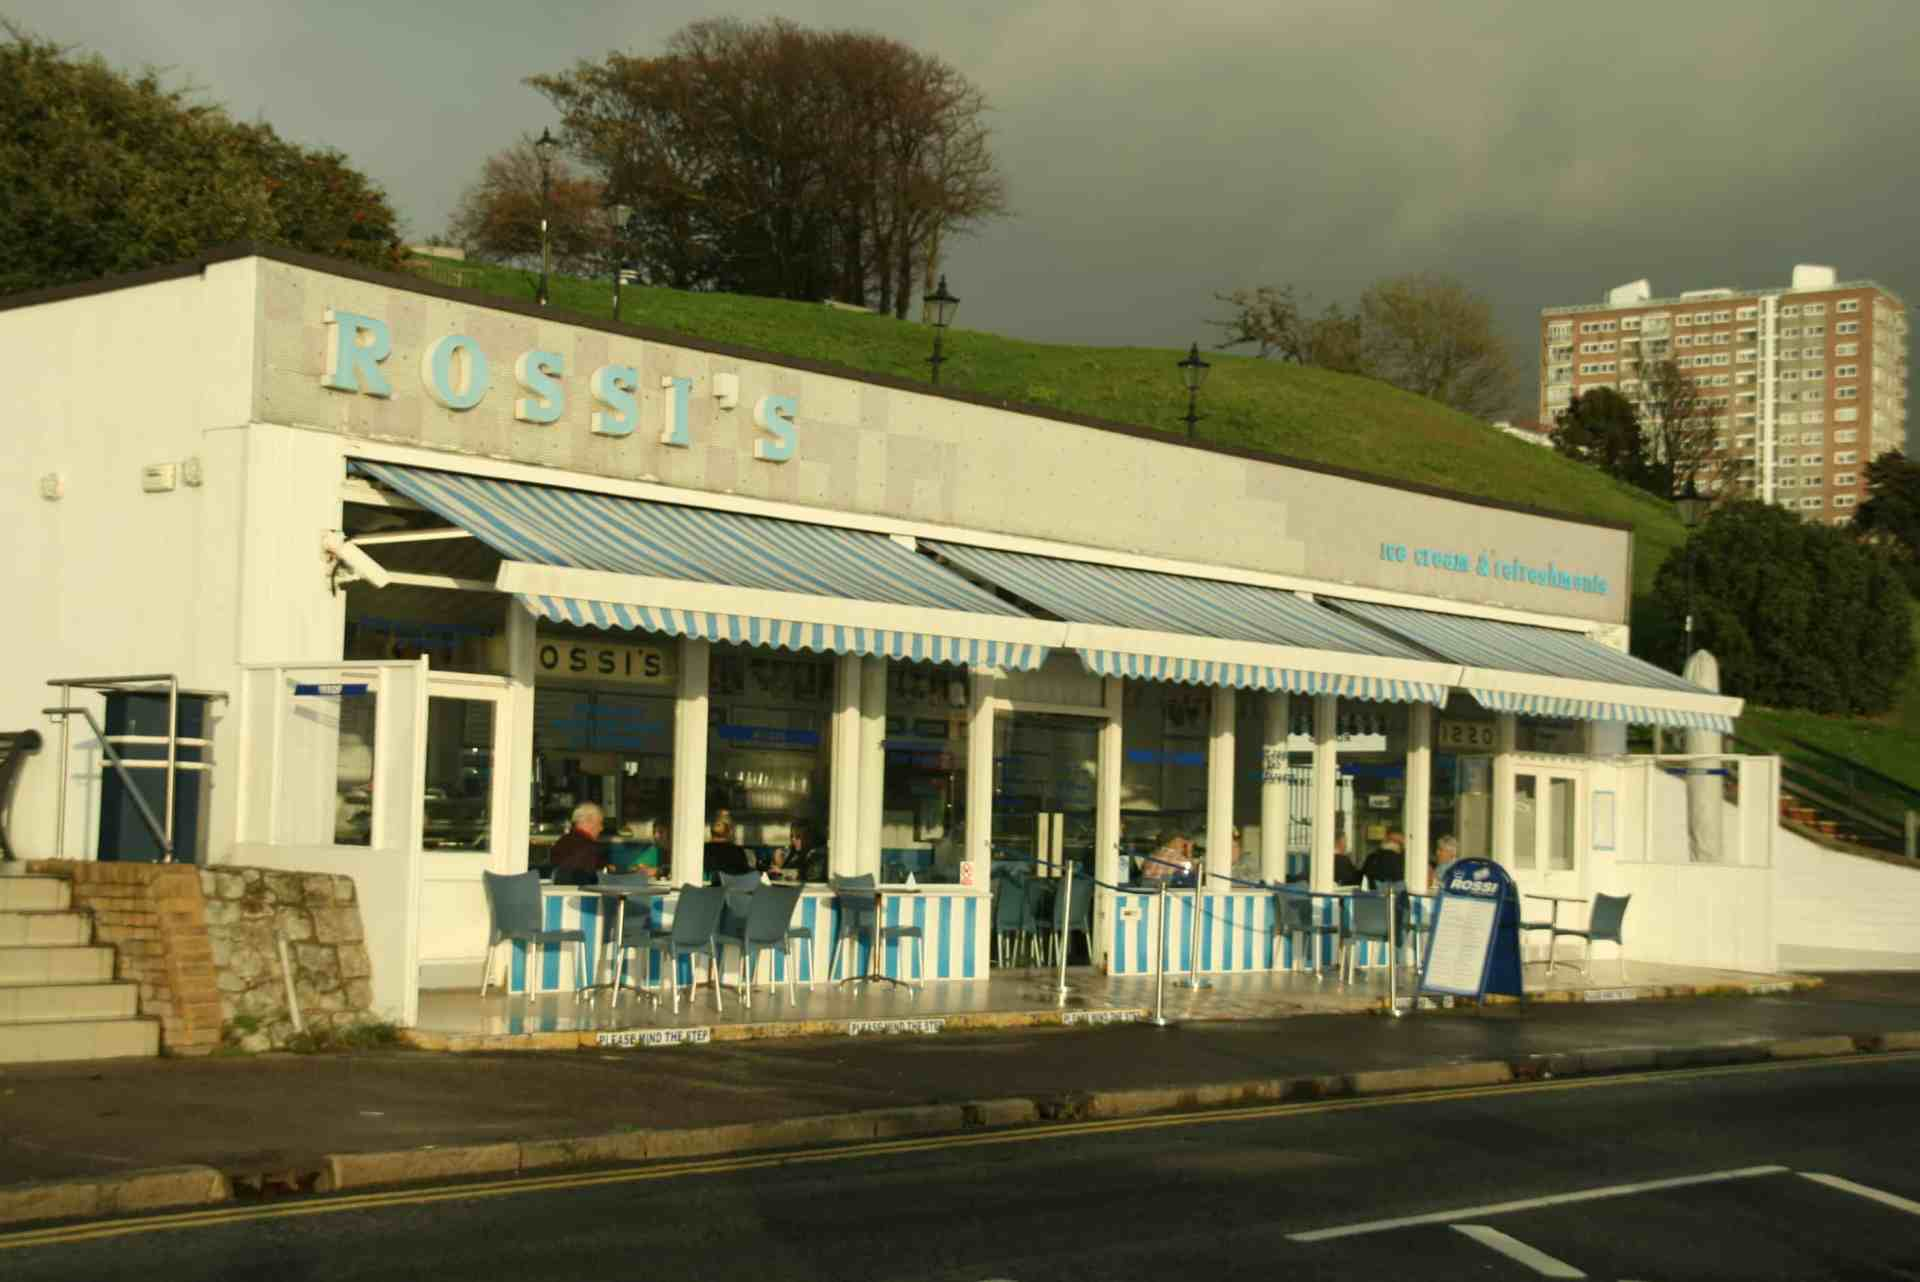 Rossi's ice cream parlour in Southend